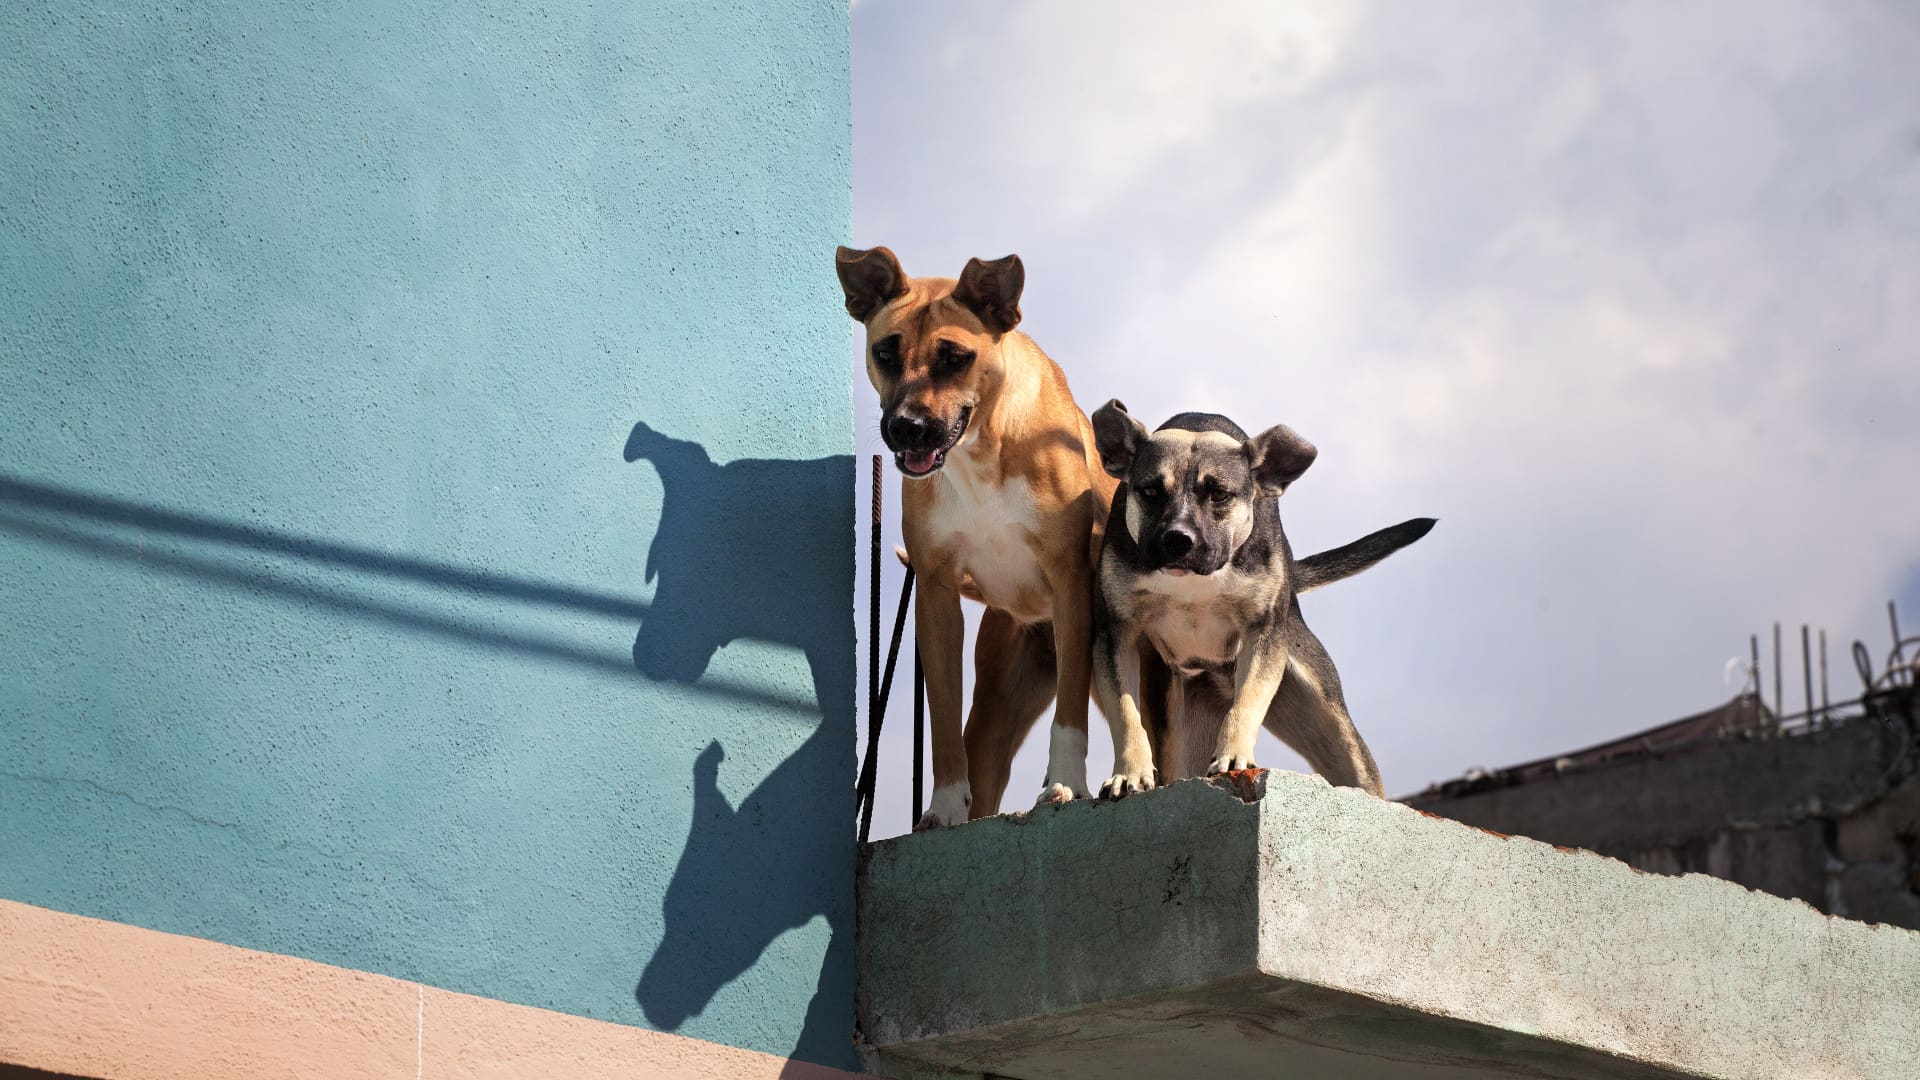 In many parts of Mexico, people keep dogs on their rooftops, both as a kind of early warning system and for convenience.